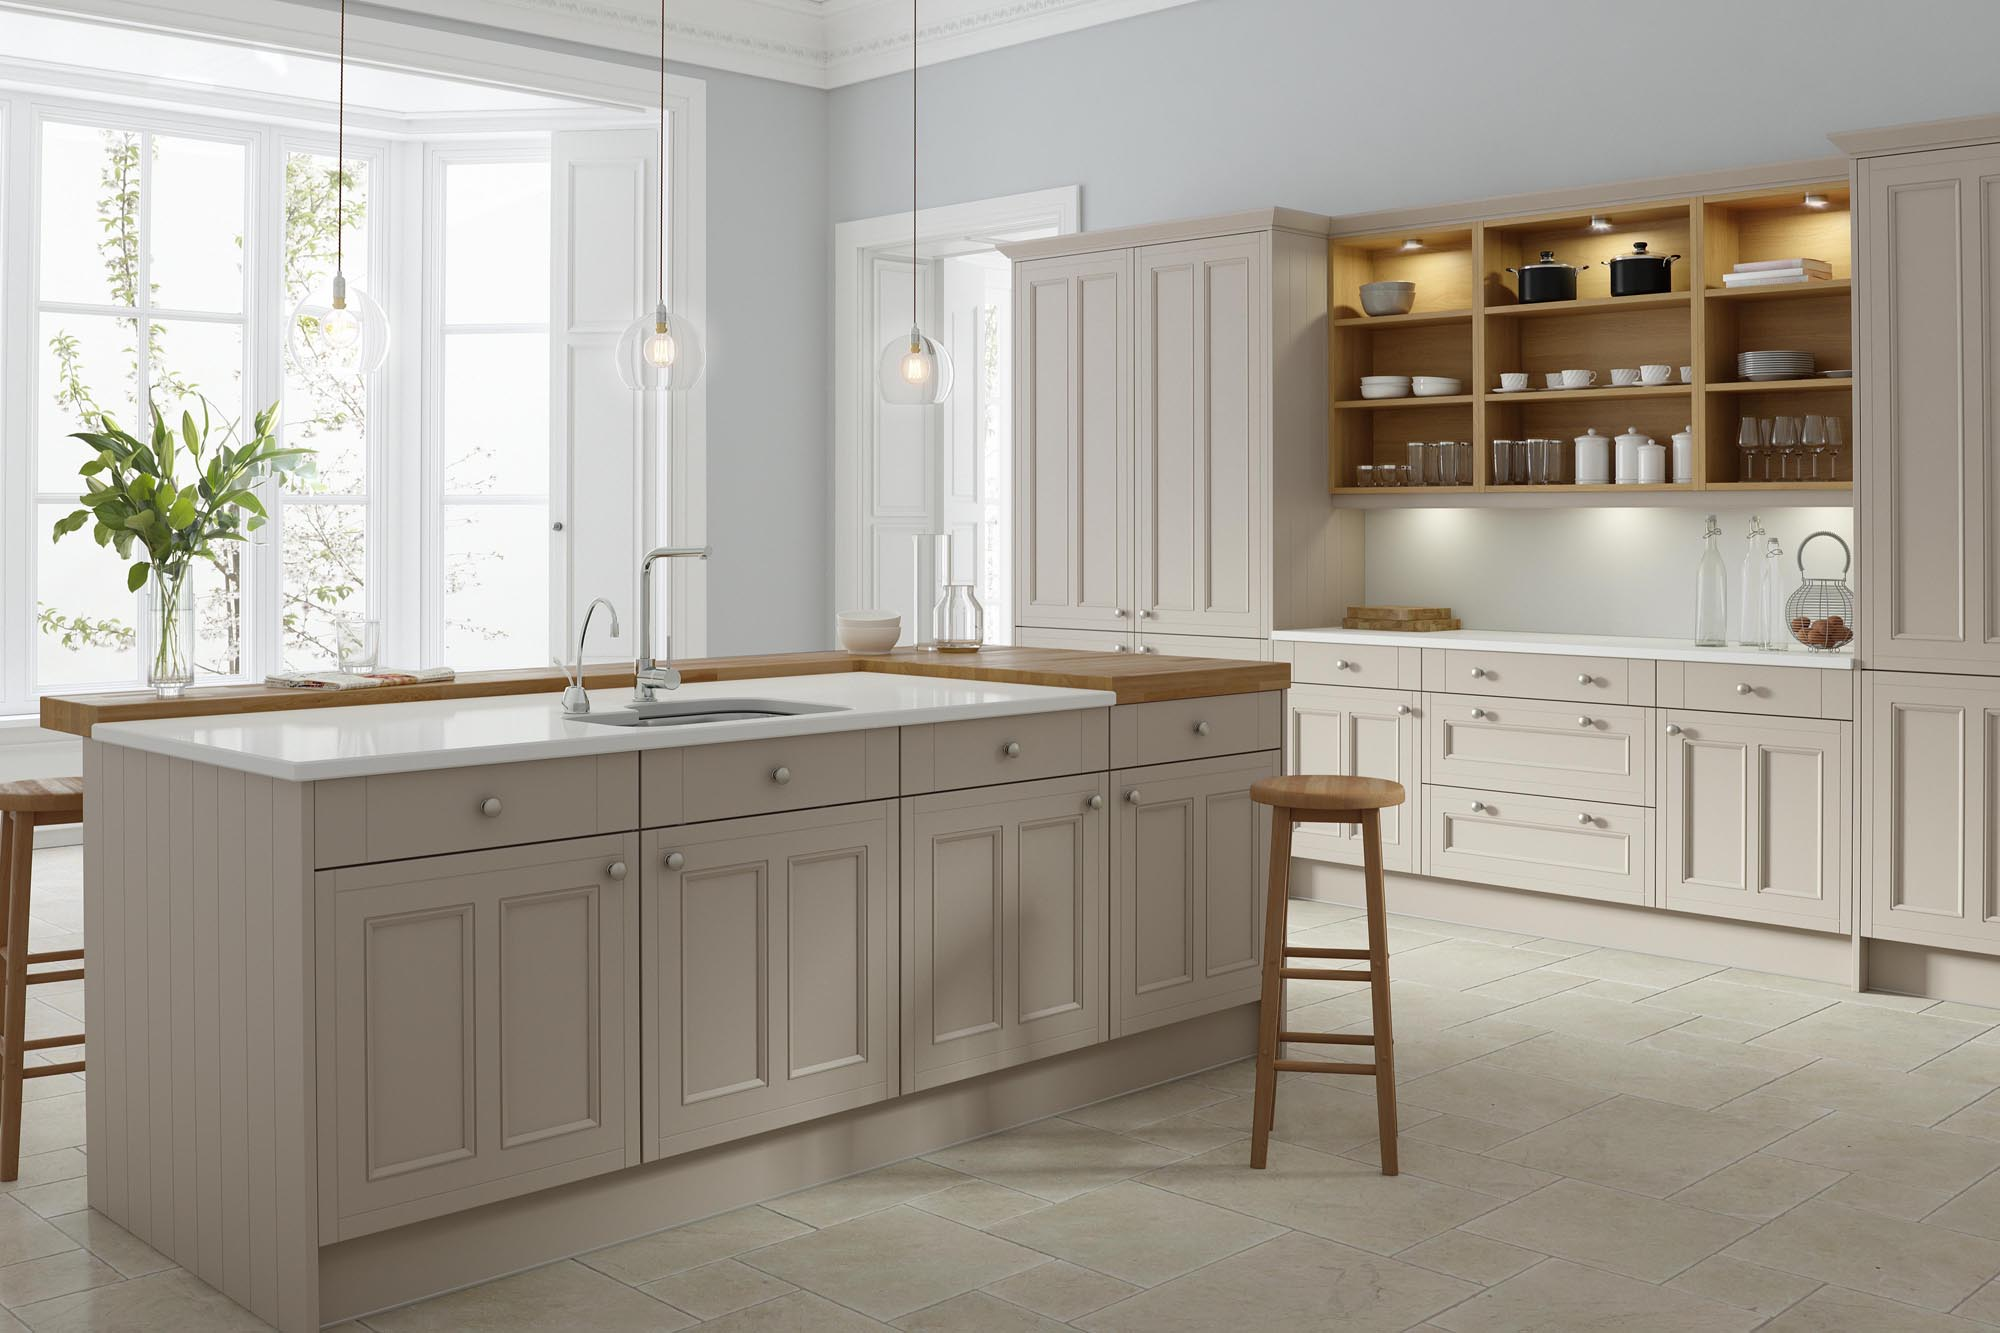 Country Kitchens Closeups